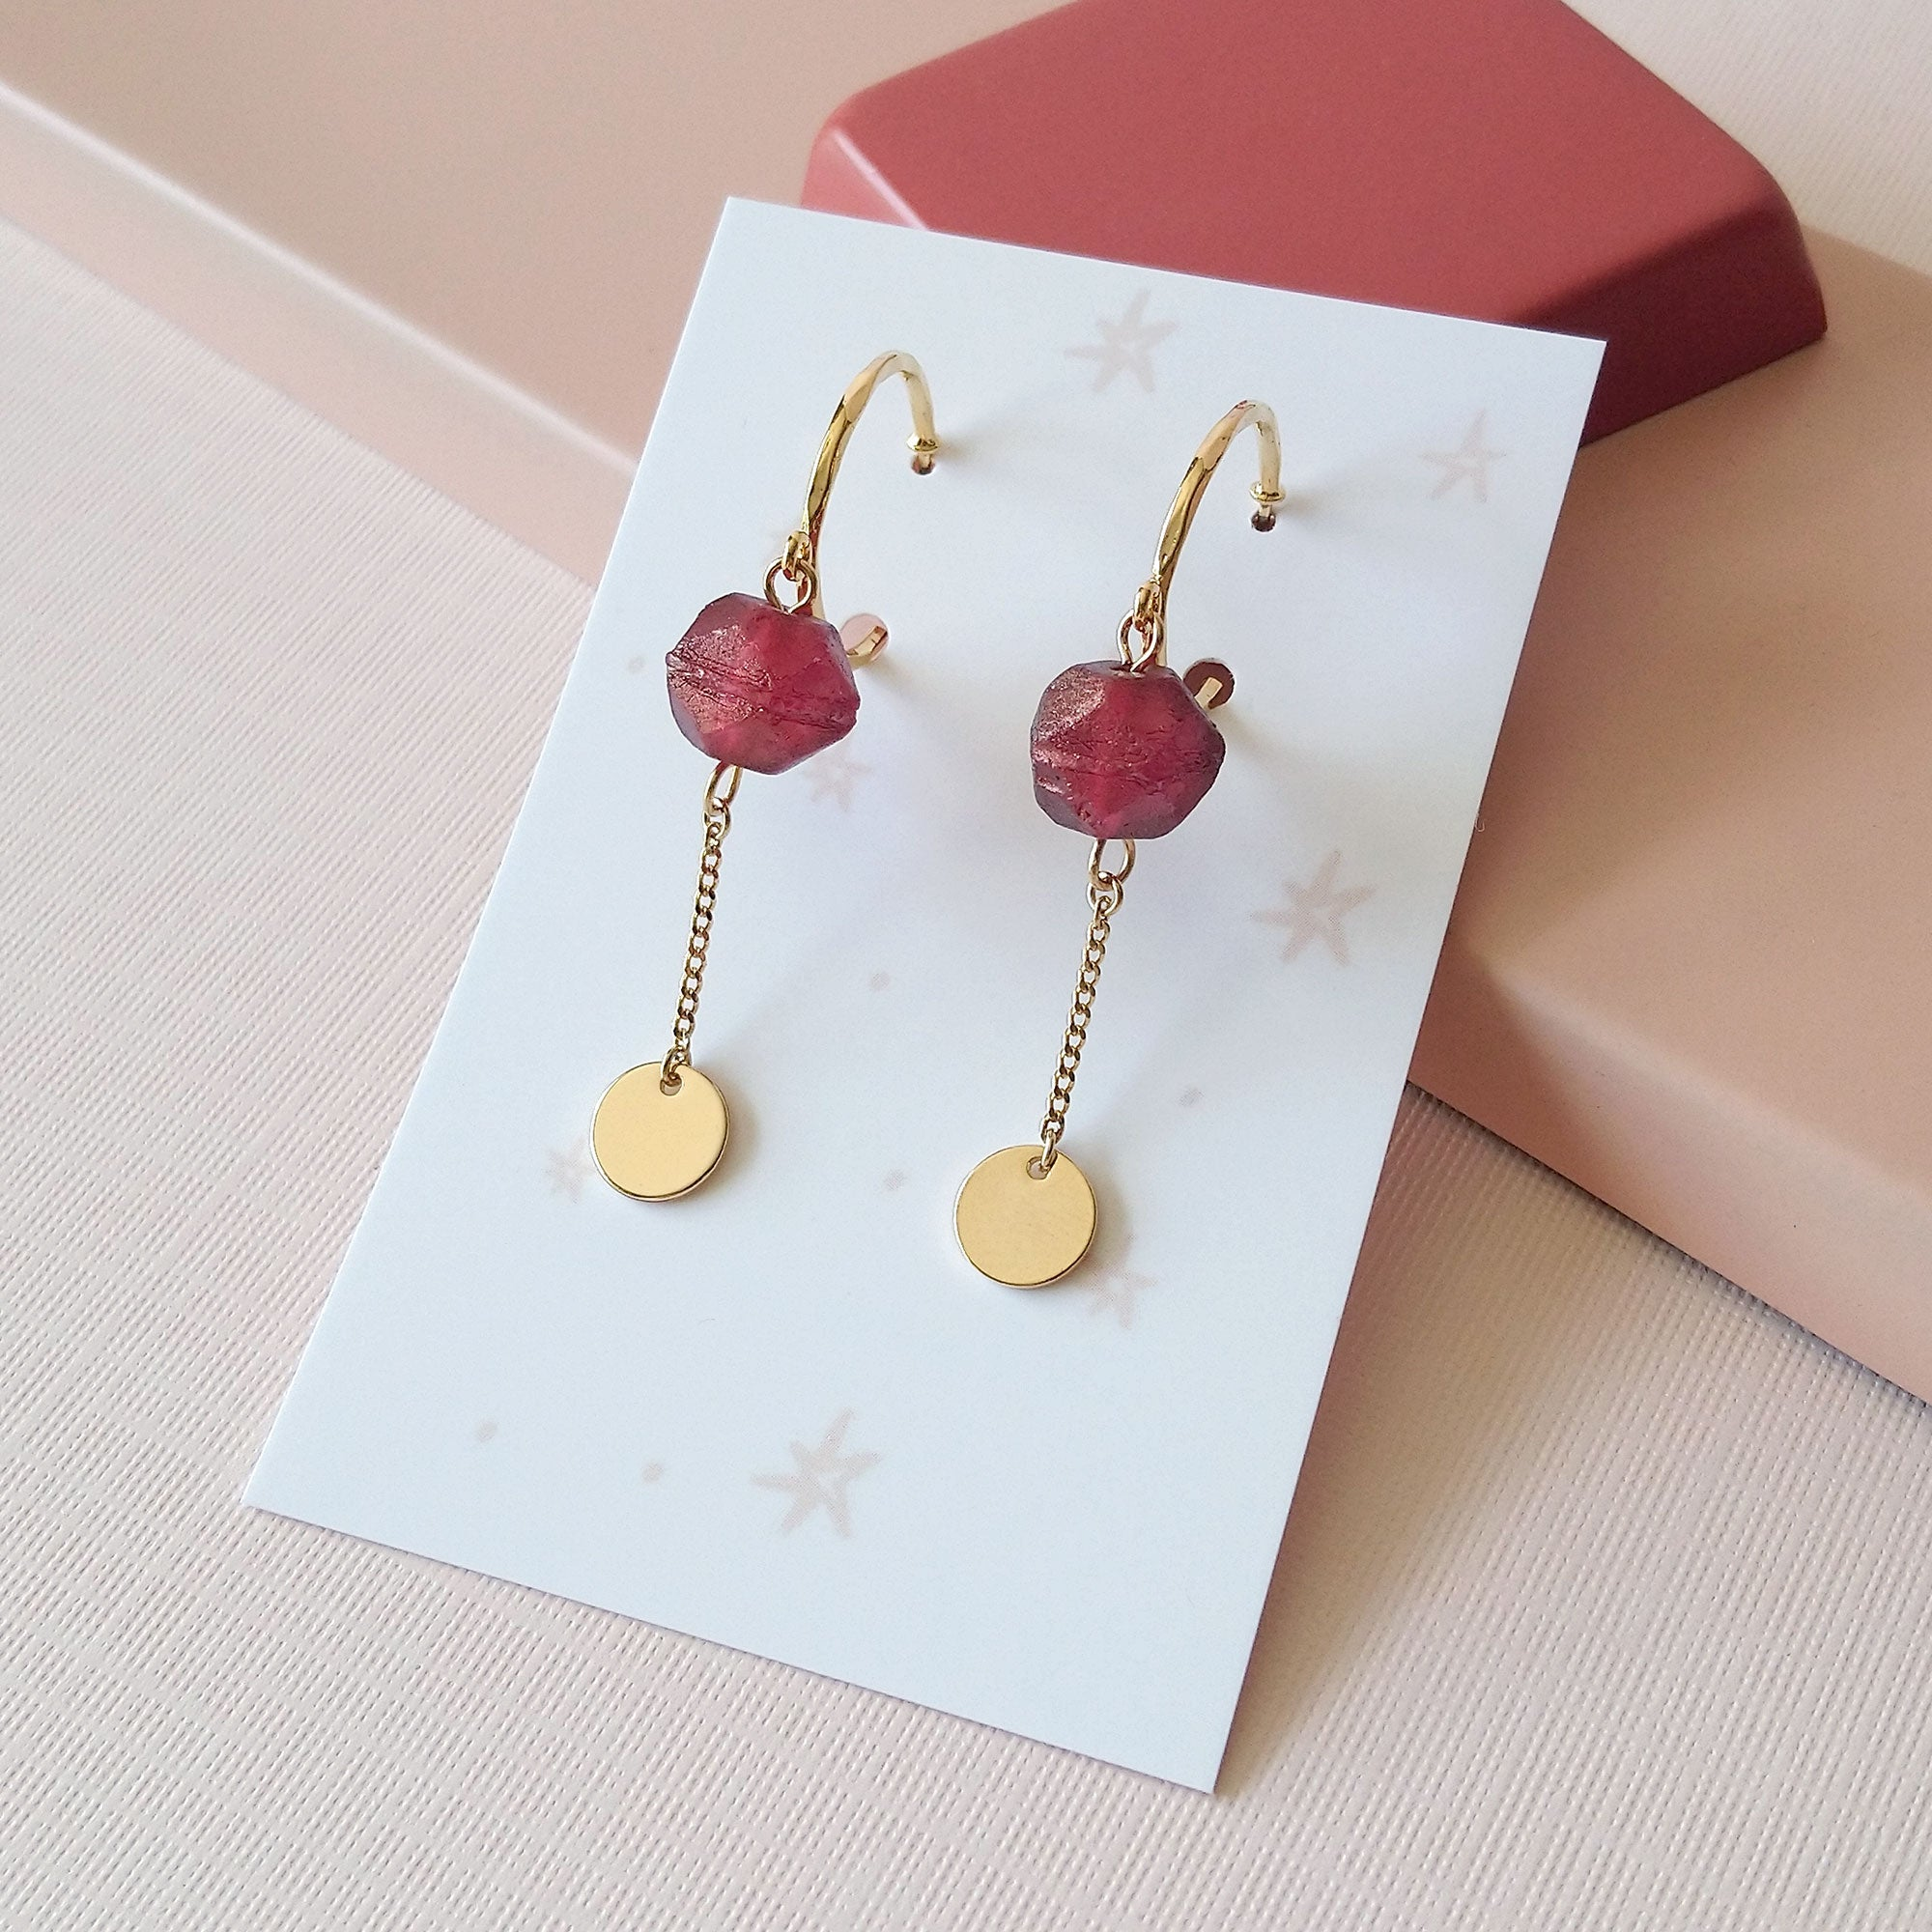 Spice Earrings in rust (SD1654)